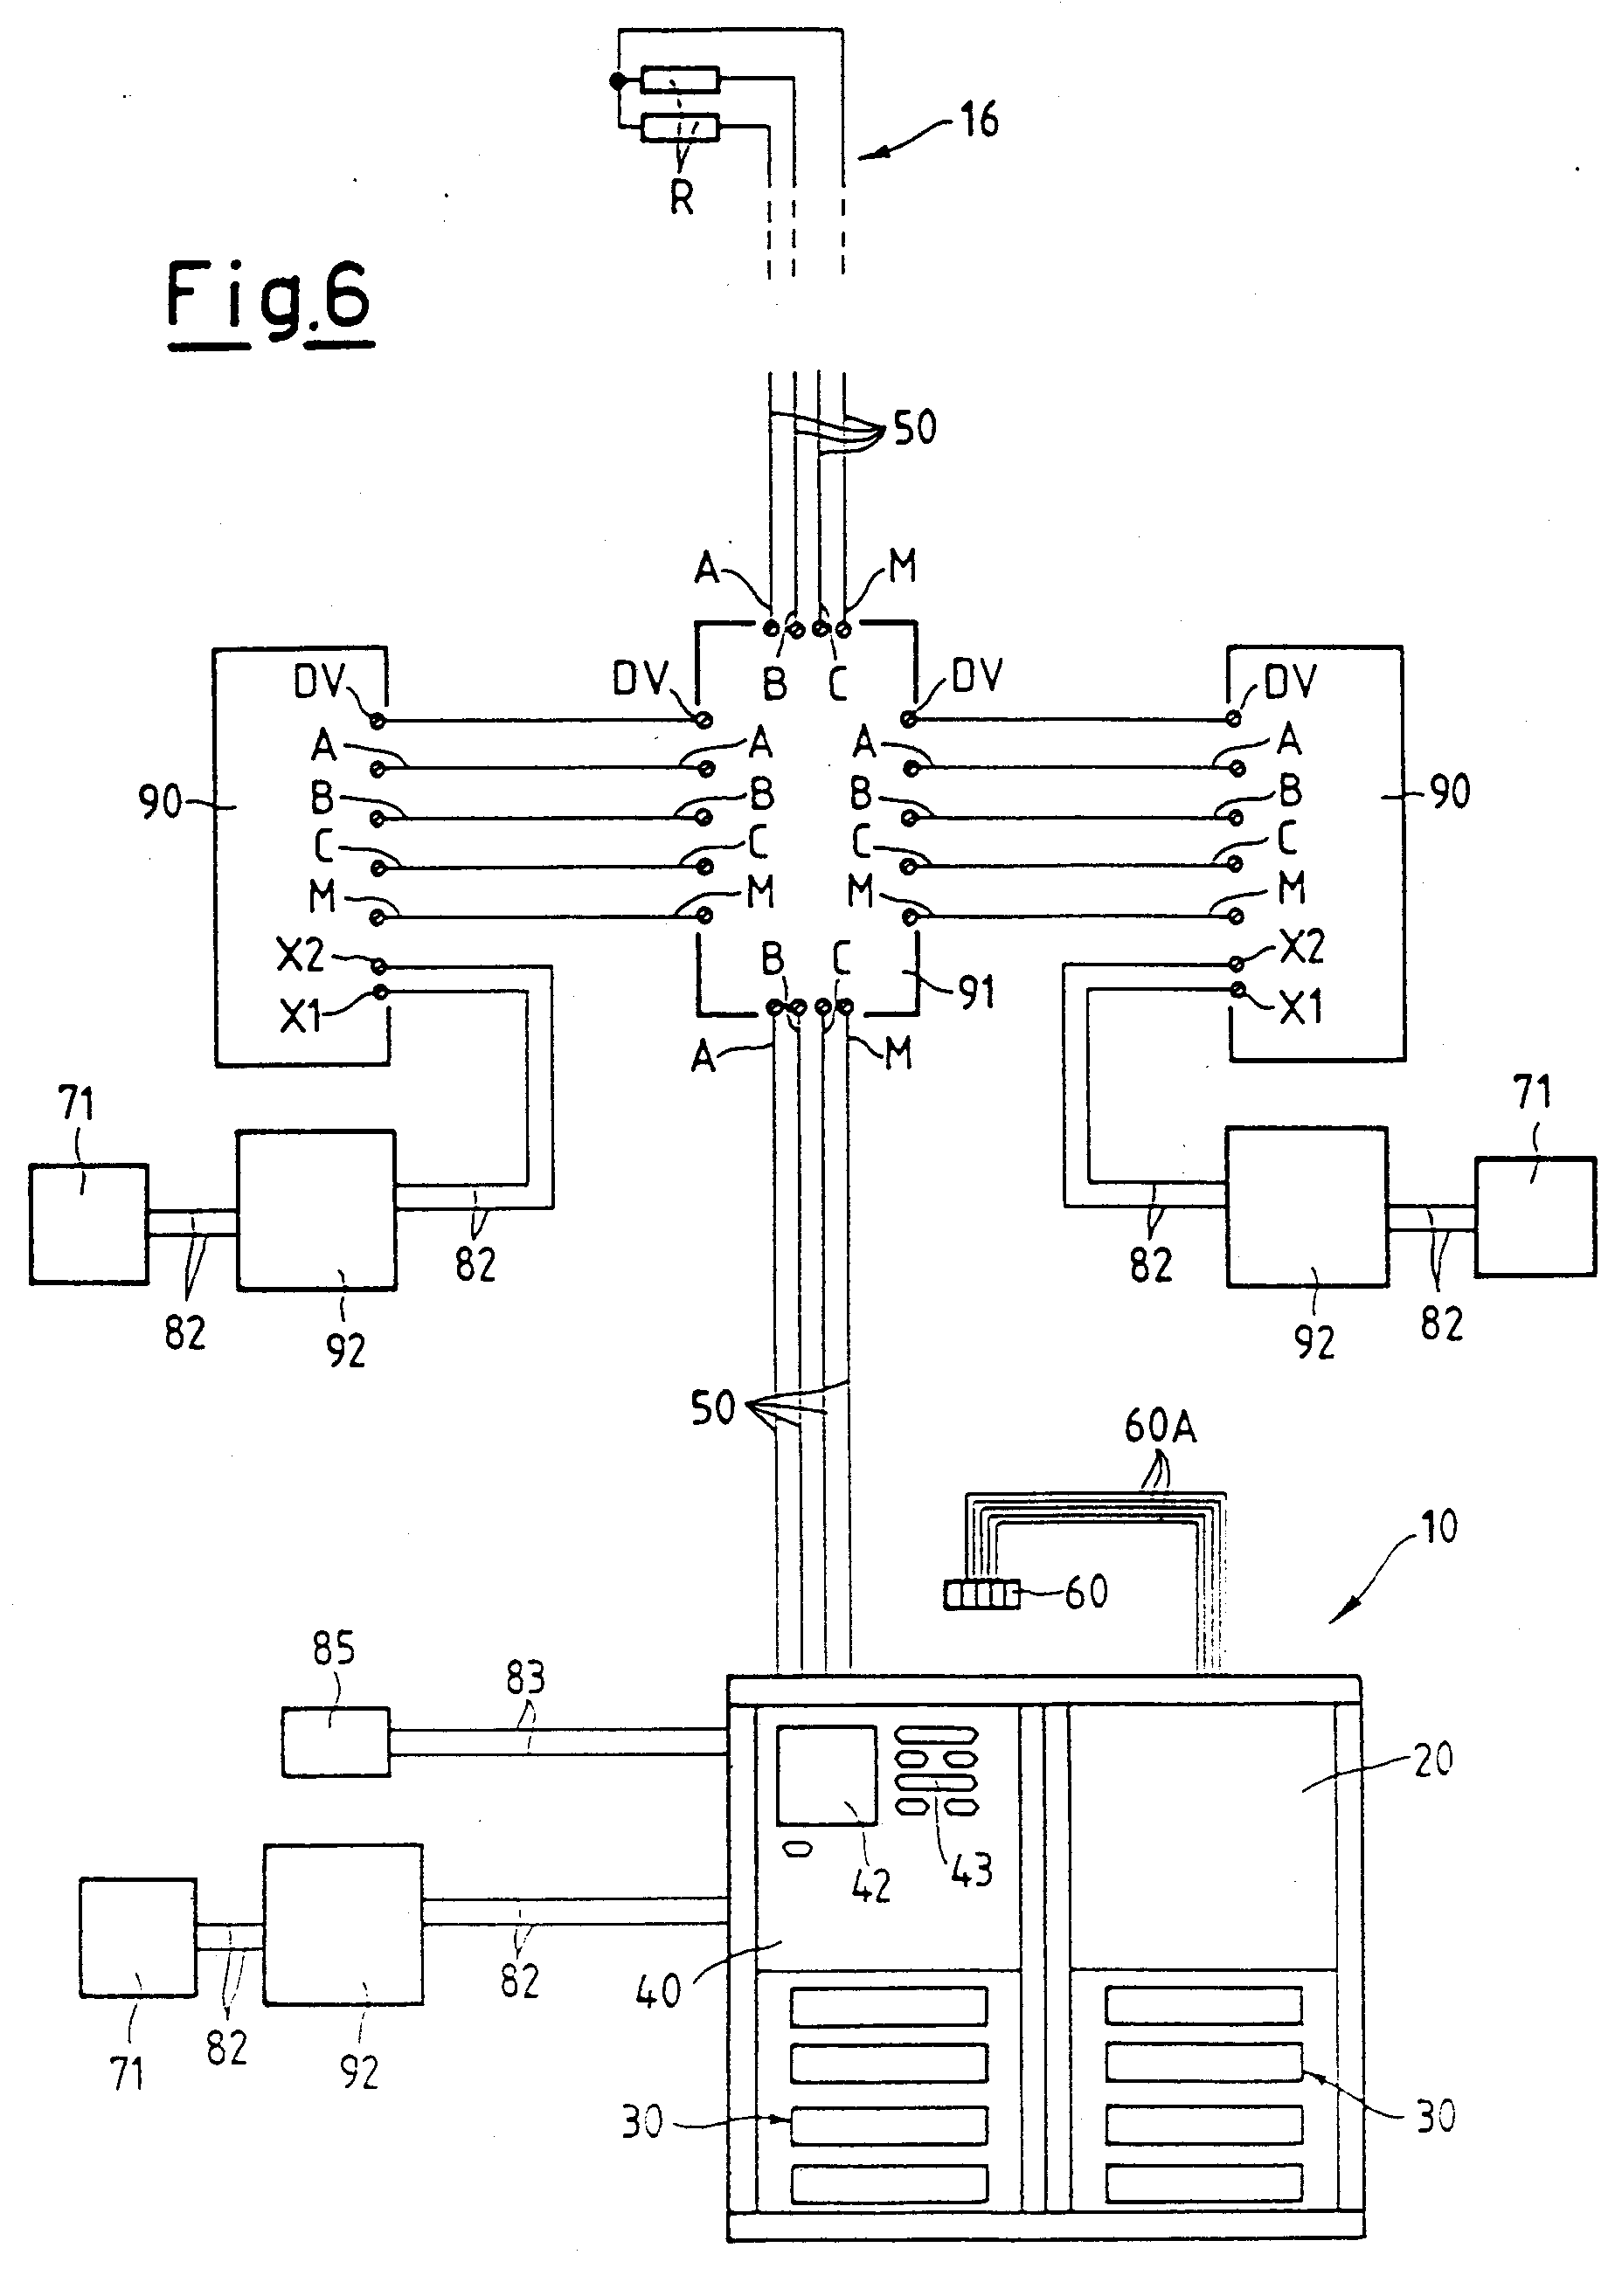 hight resolution of 00150001 patent ep0876044a2 electric connection system for intercom and comelit intercom wiring diagram at cita